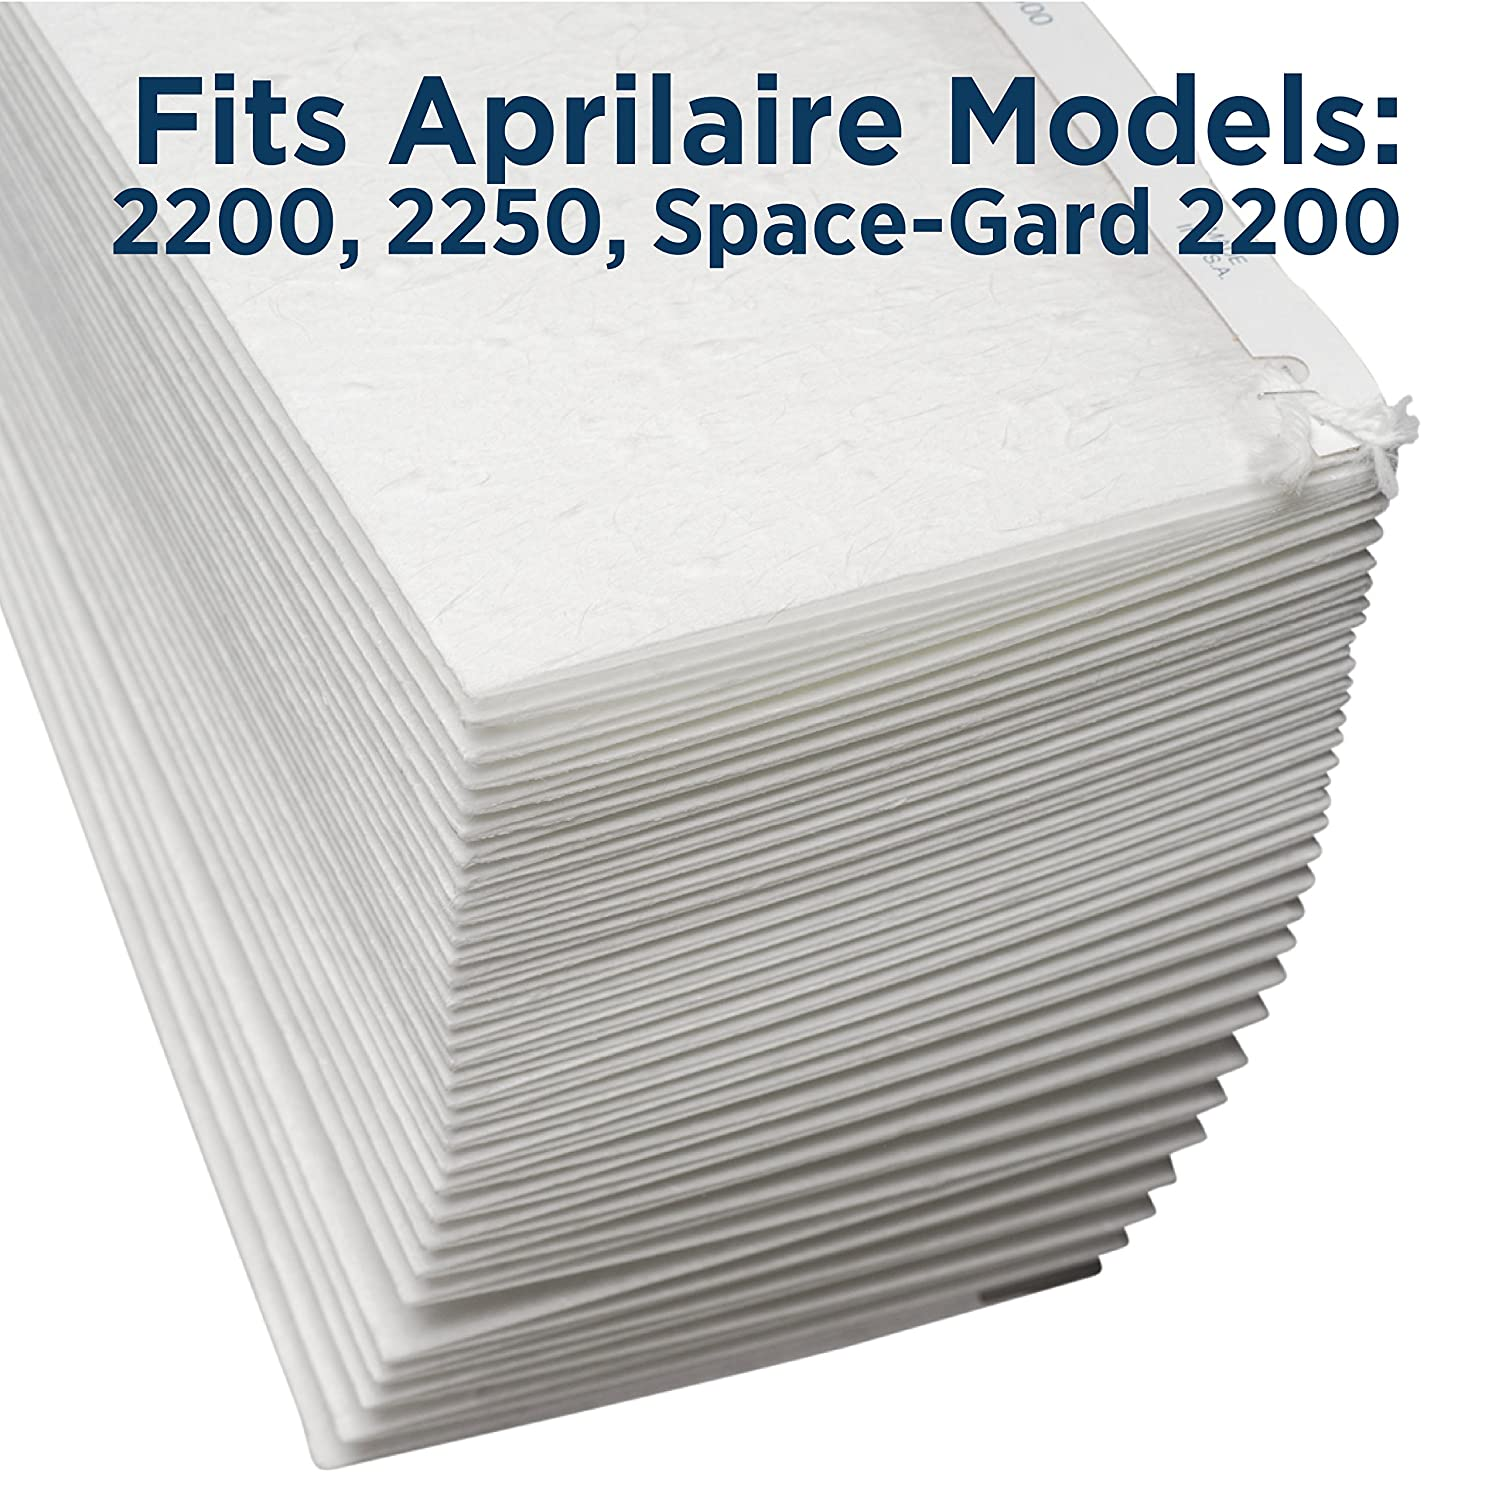 MERV 10 Aprilaire 201 Replacement Filter for Aprilaire Whole House Air Purifier Models: 2200 Pack of 1 2250 Space Gard 2200